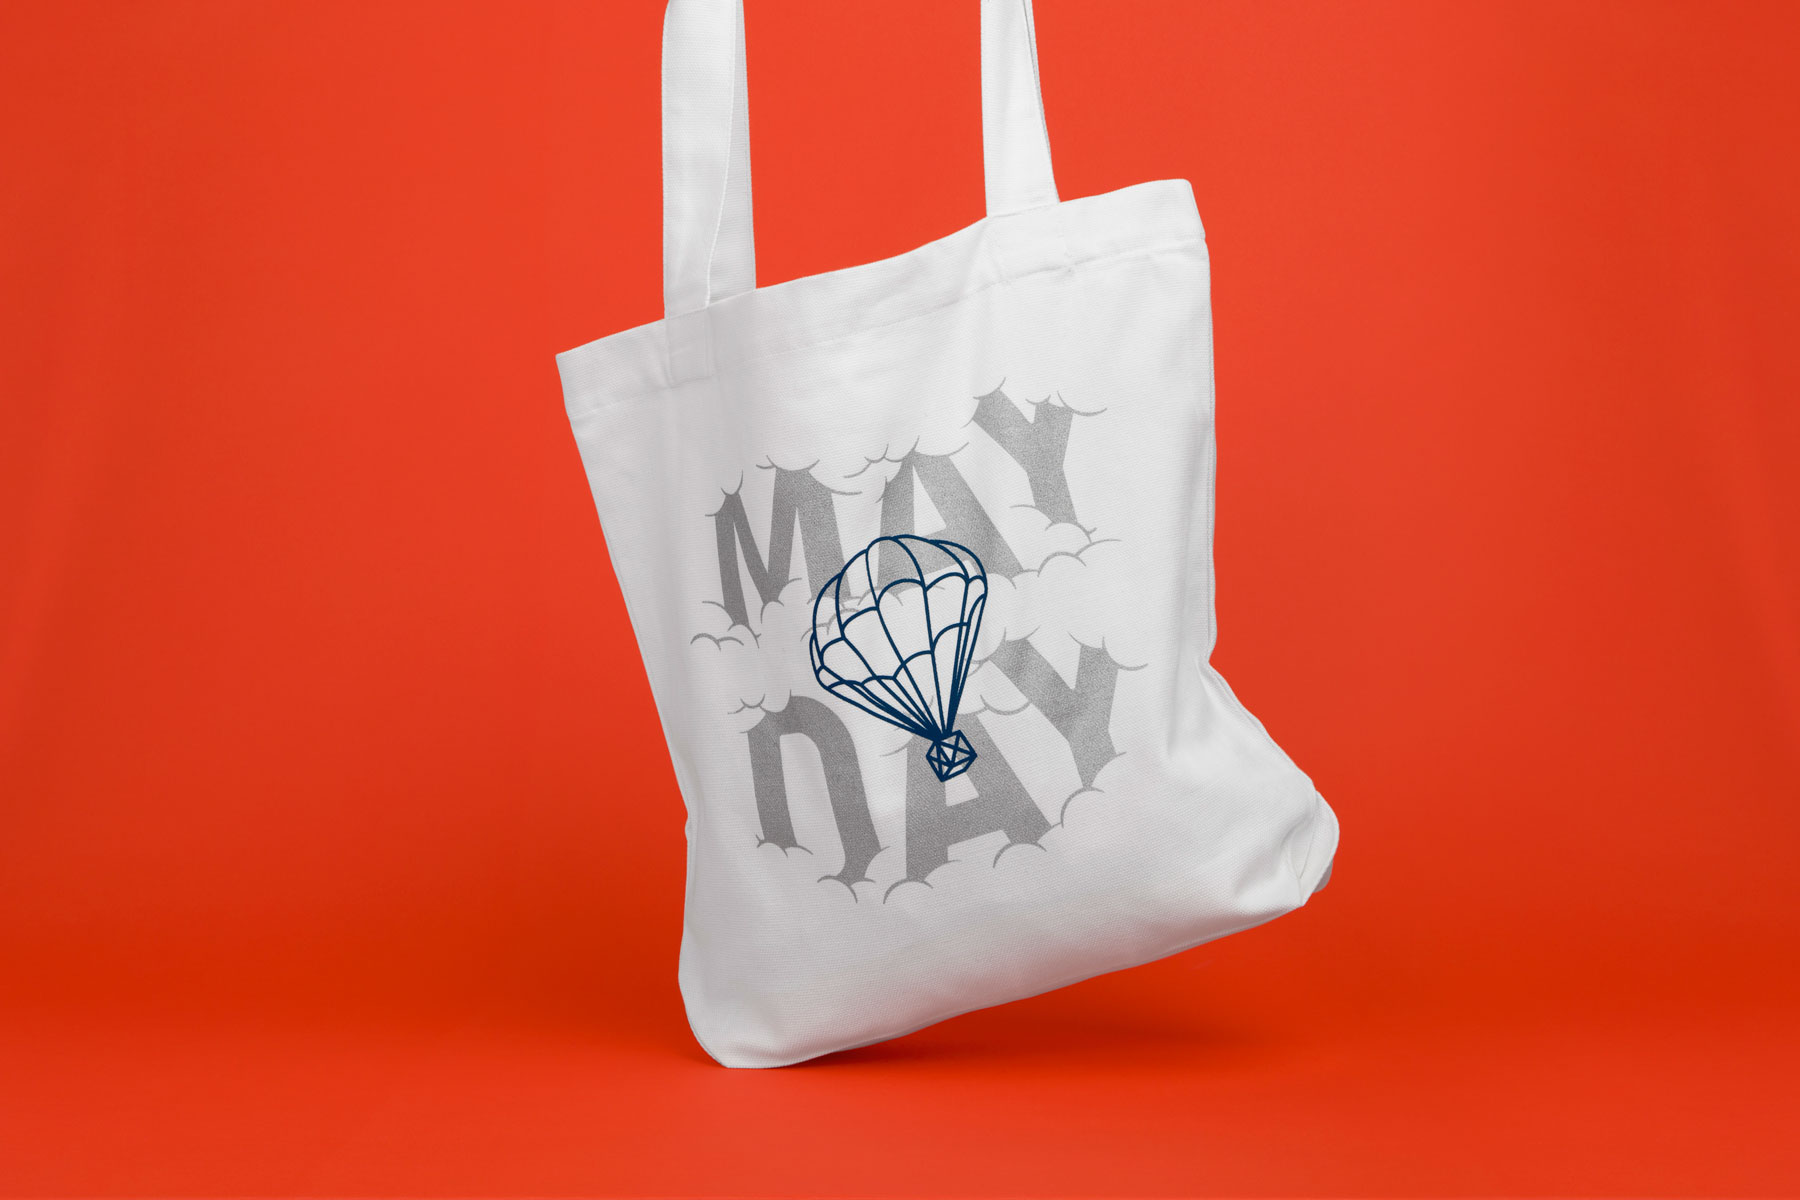 Mayday-Coffee-and-Food-totebag